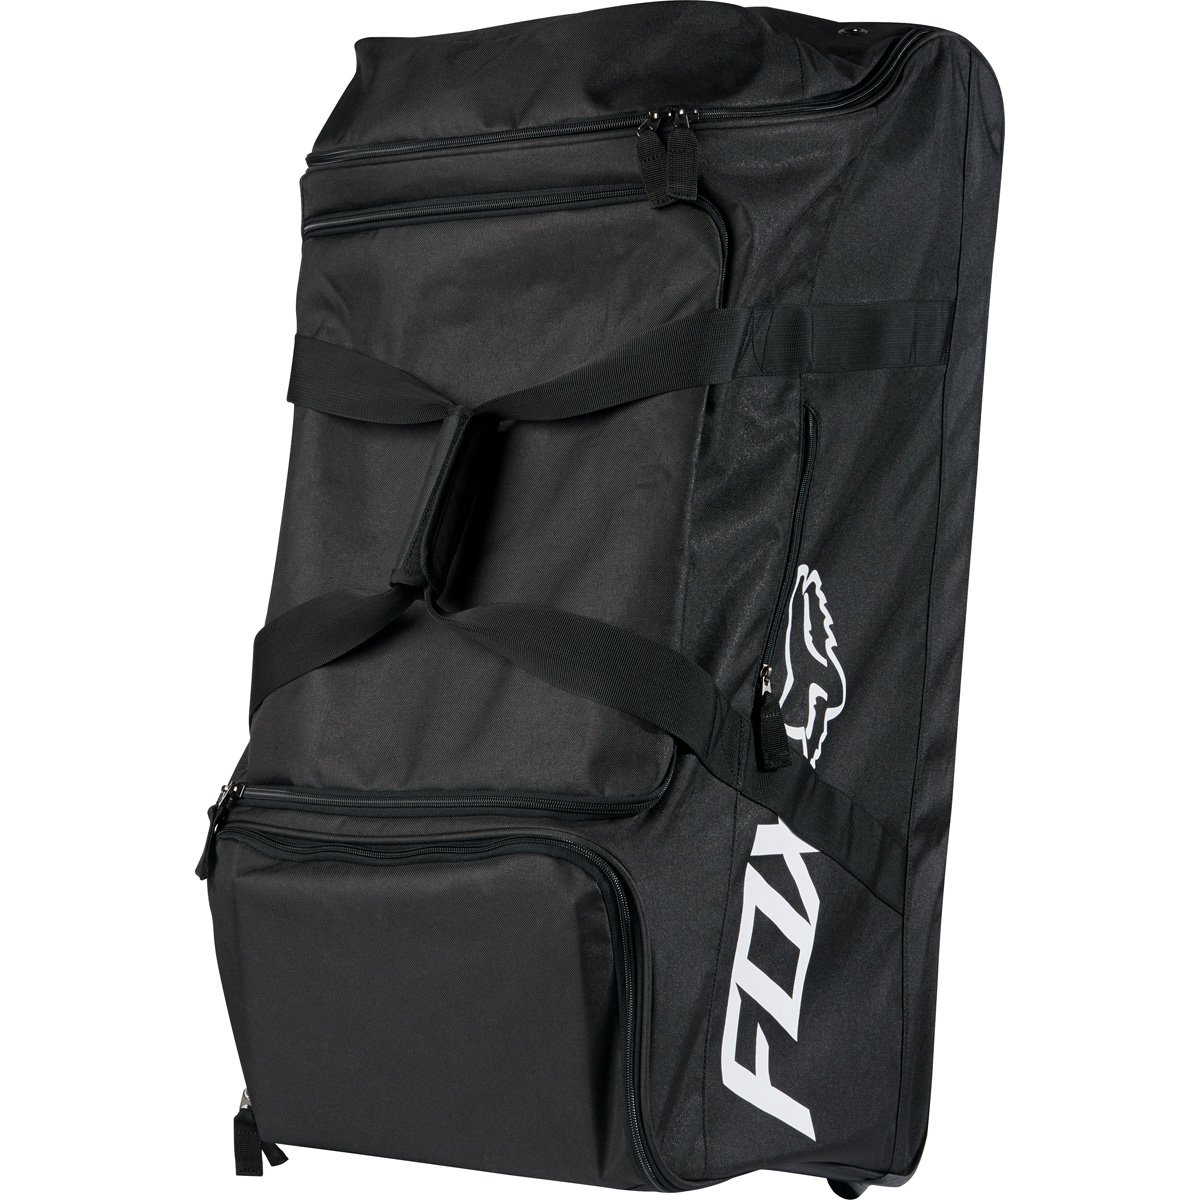 Fox Racing Shuttle 180 Sports Gear Bag - Black / One Size by Fox Racing